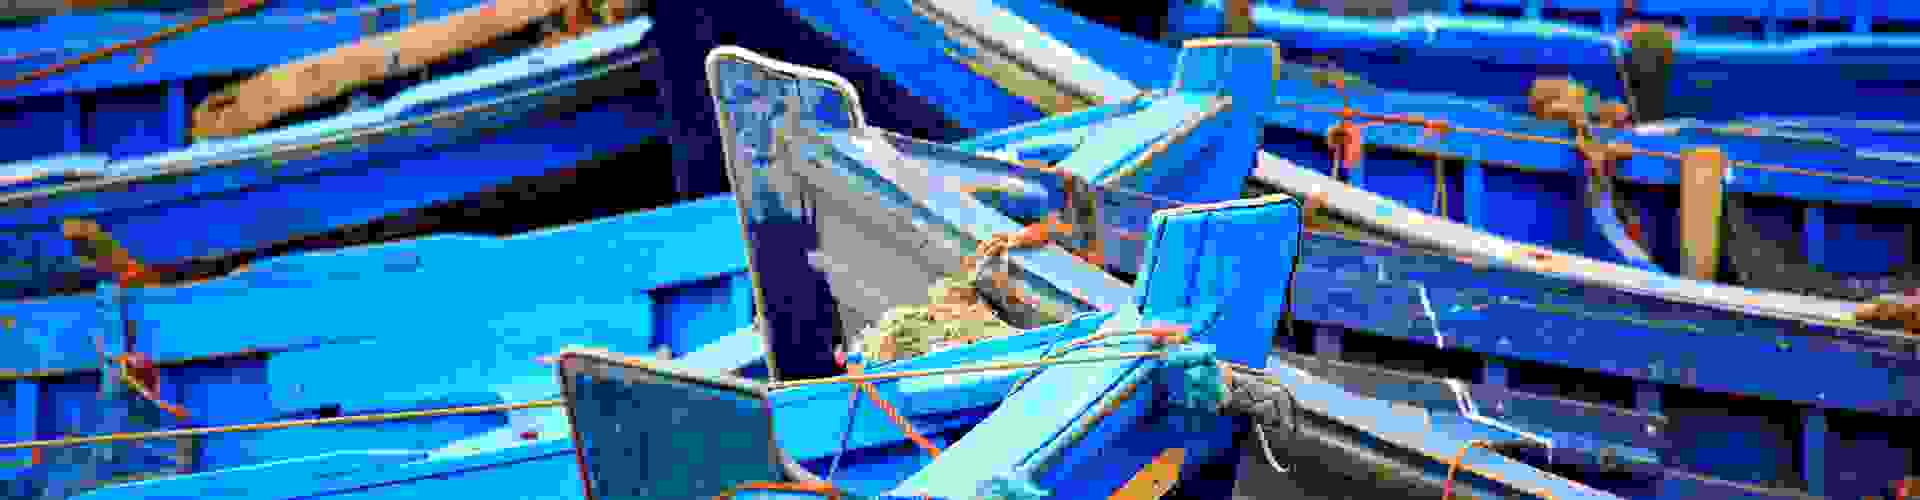 Blue-fishing-boats.jpg